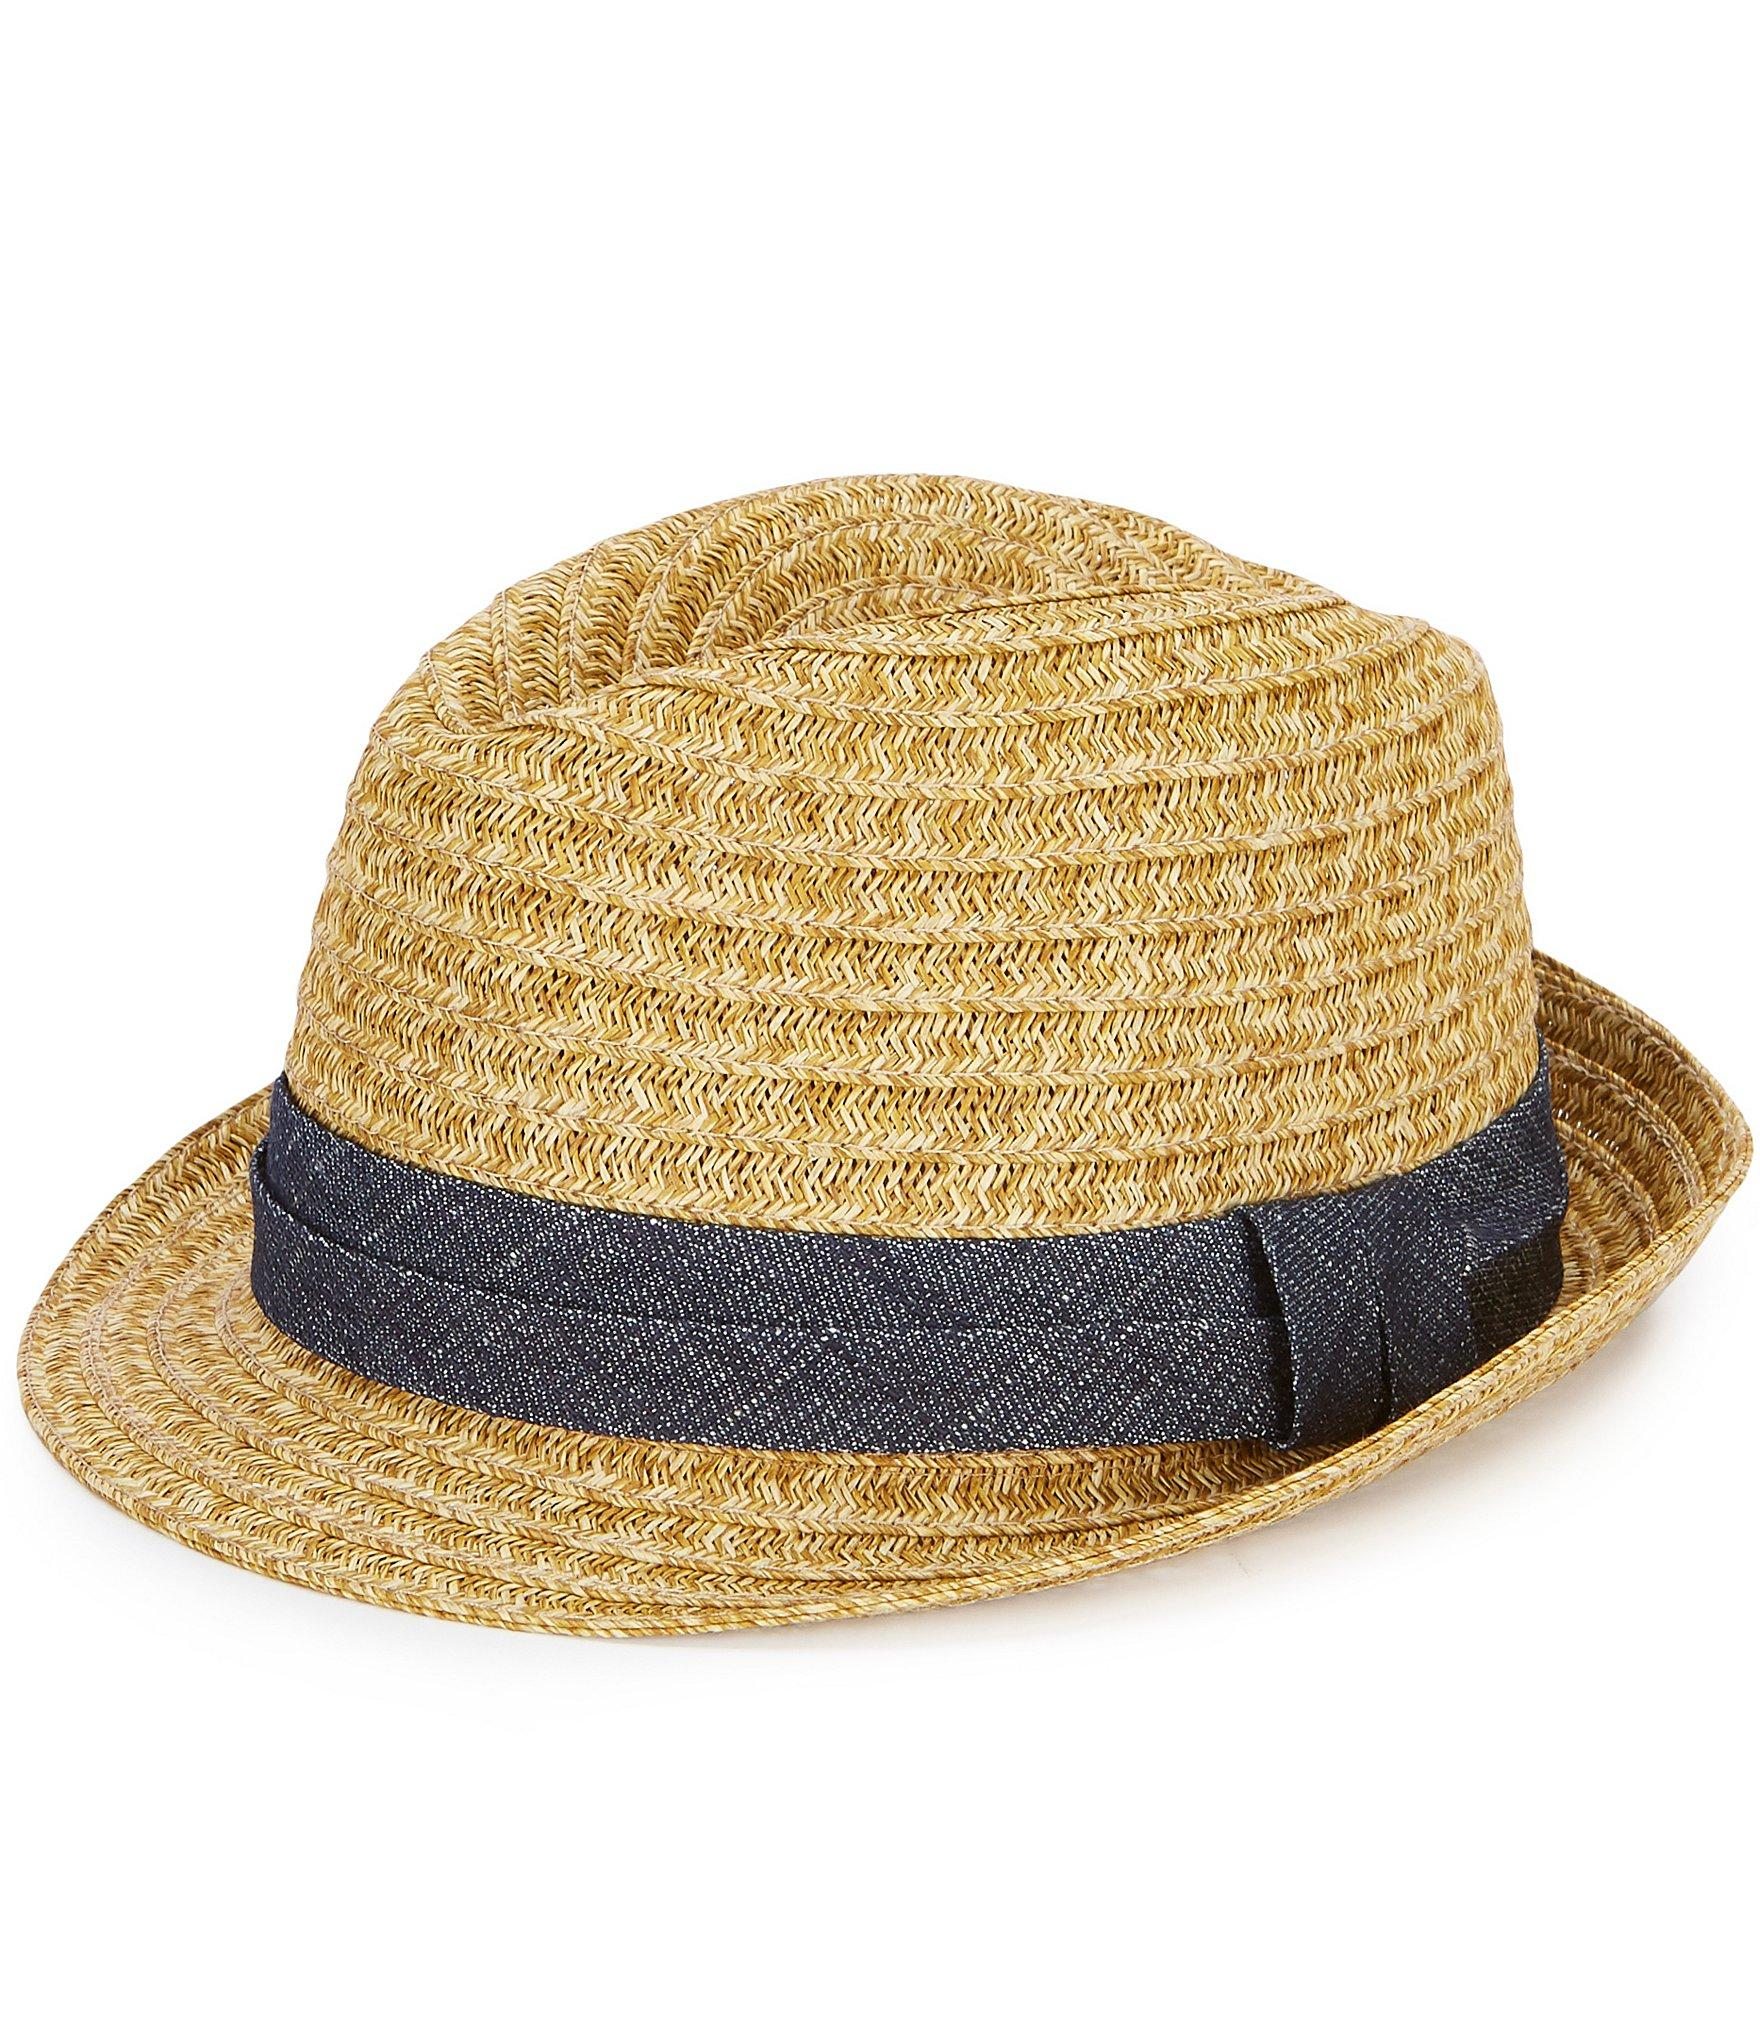 66a35c759 Lyst - Cremieux Straw Fedora in Natural for Men